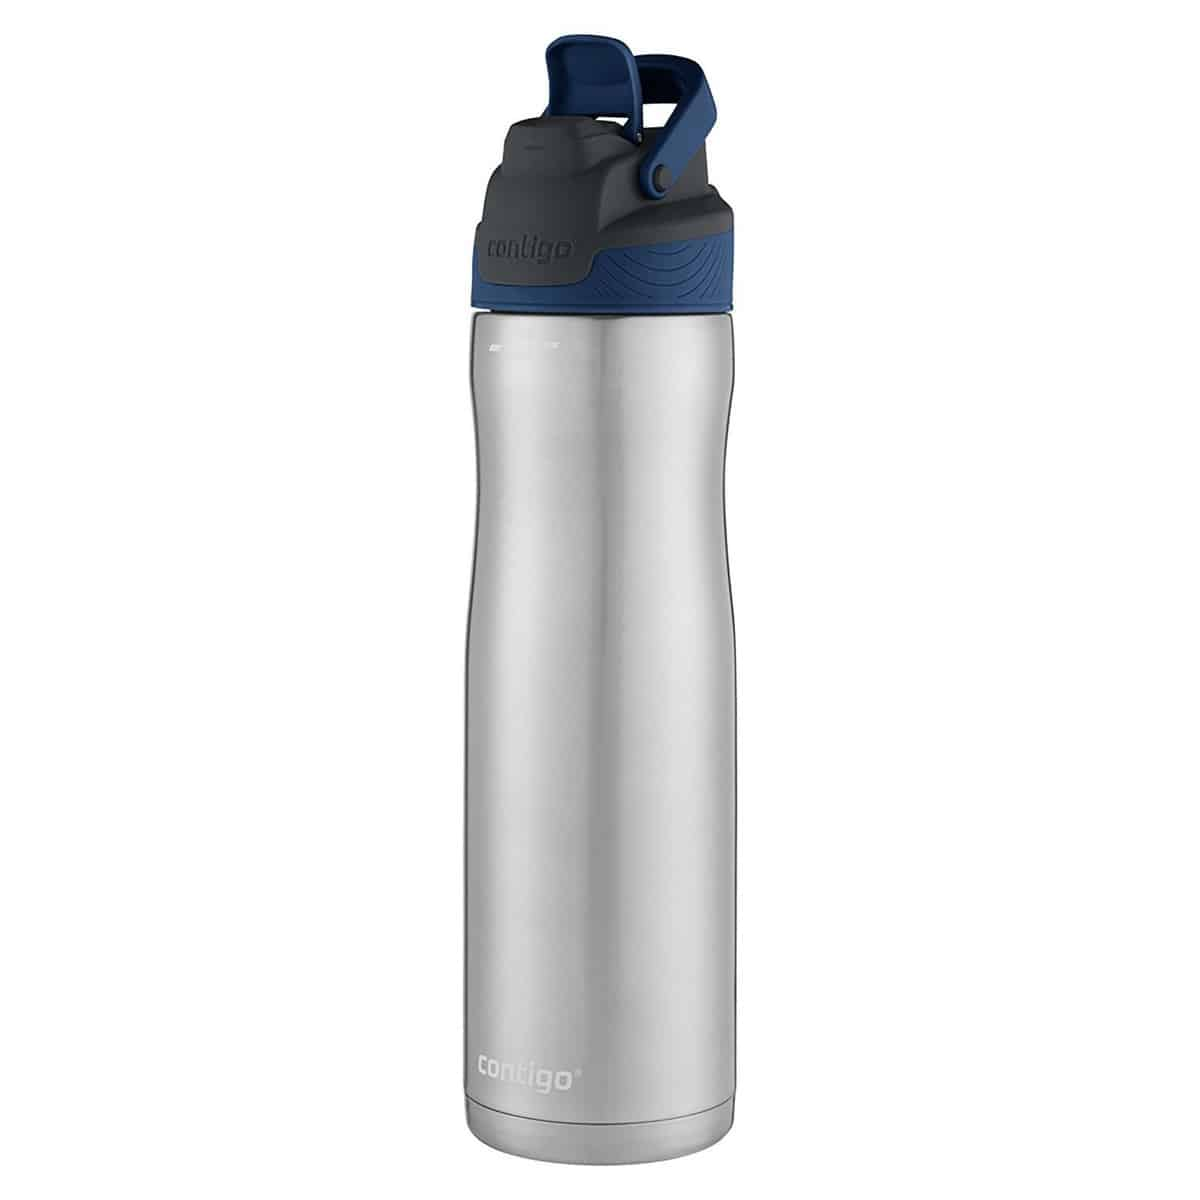 Contigo AUTOSEAL Chill Stainless Steel Water Bottle, 24 oz, SS Monaco